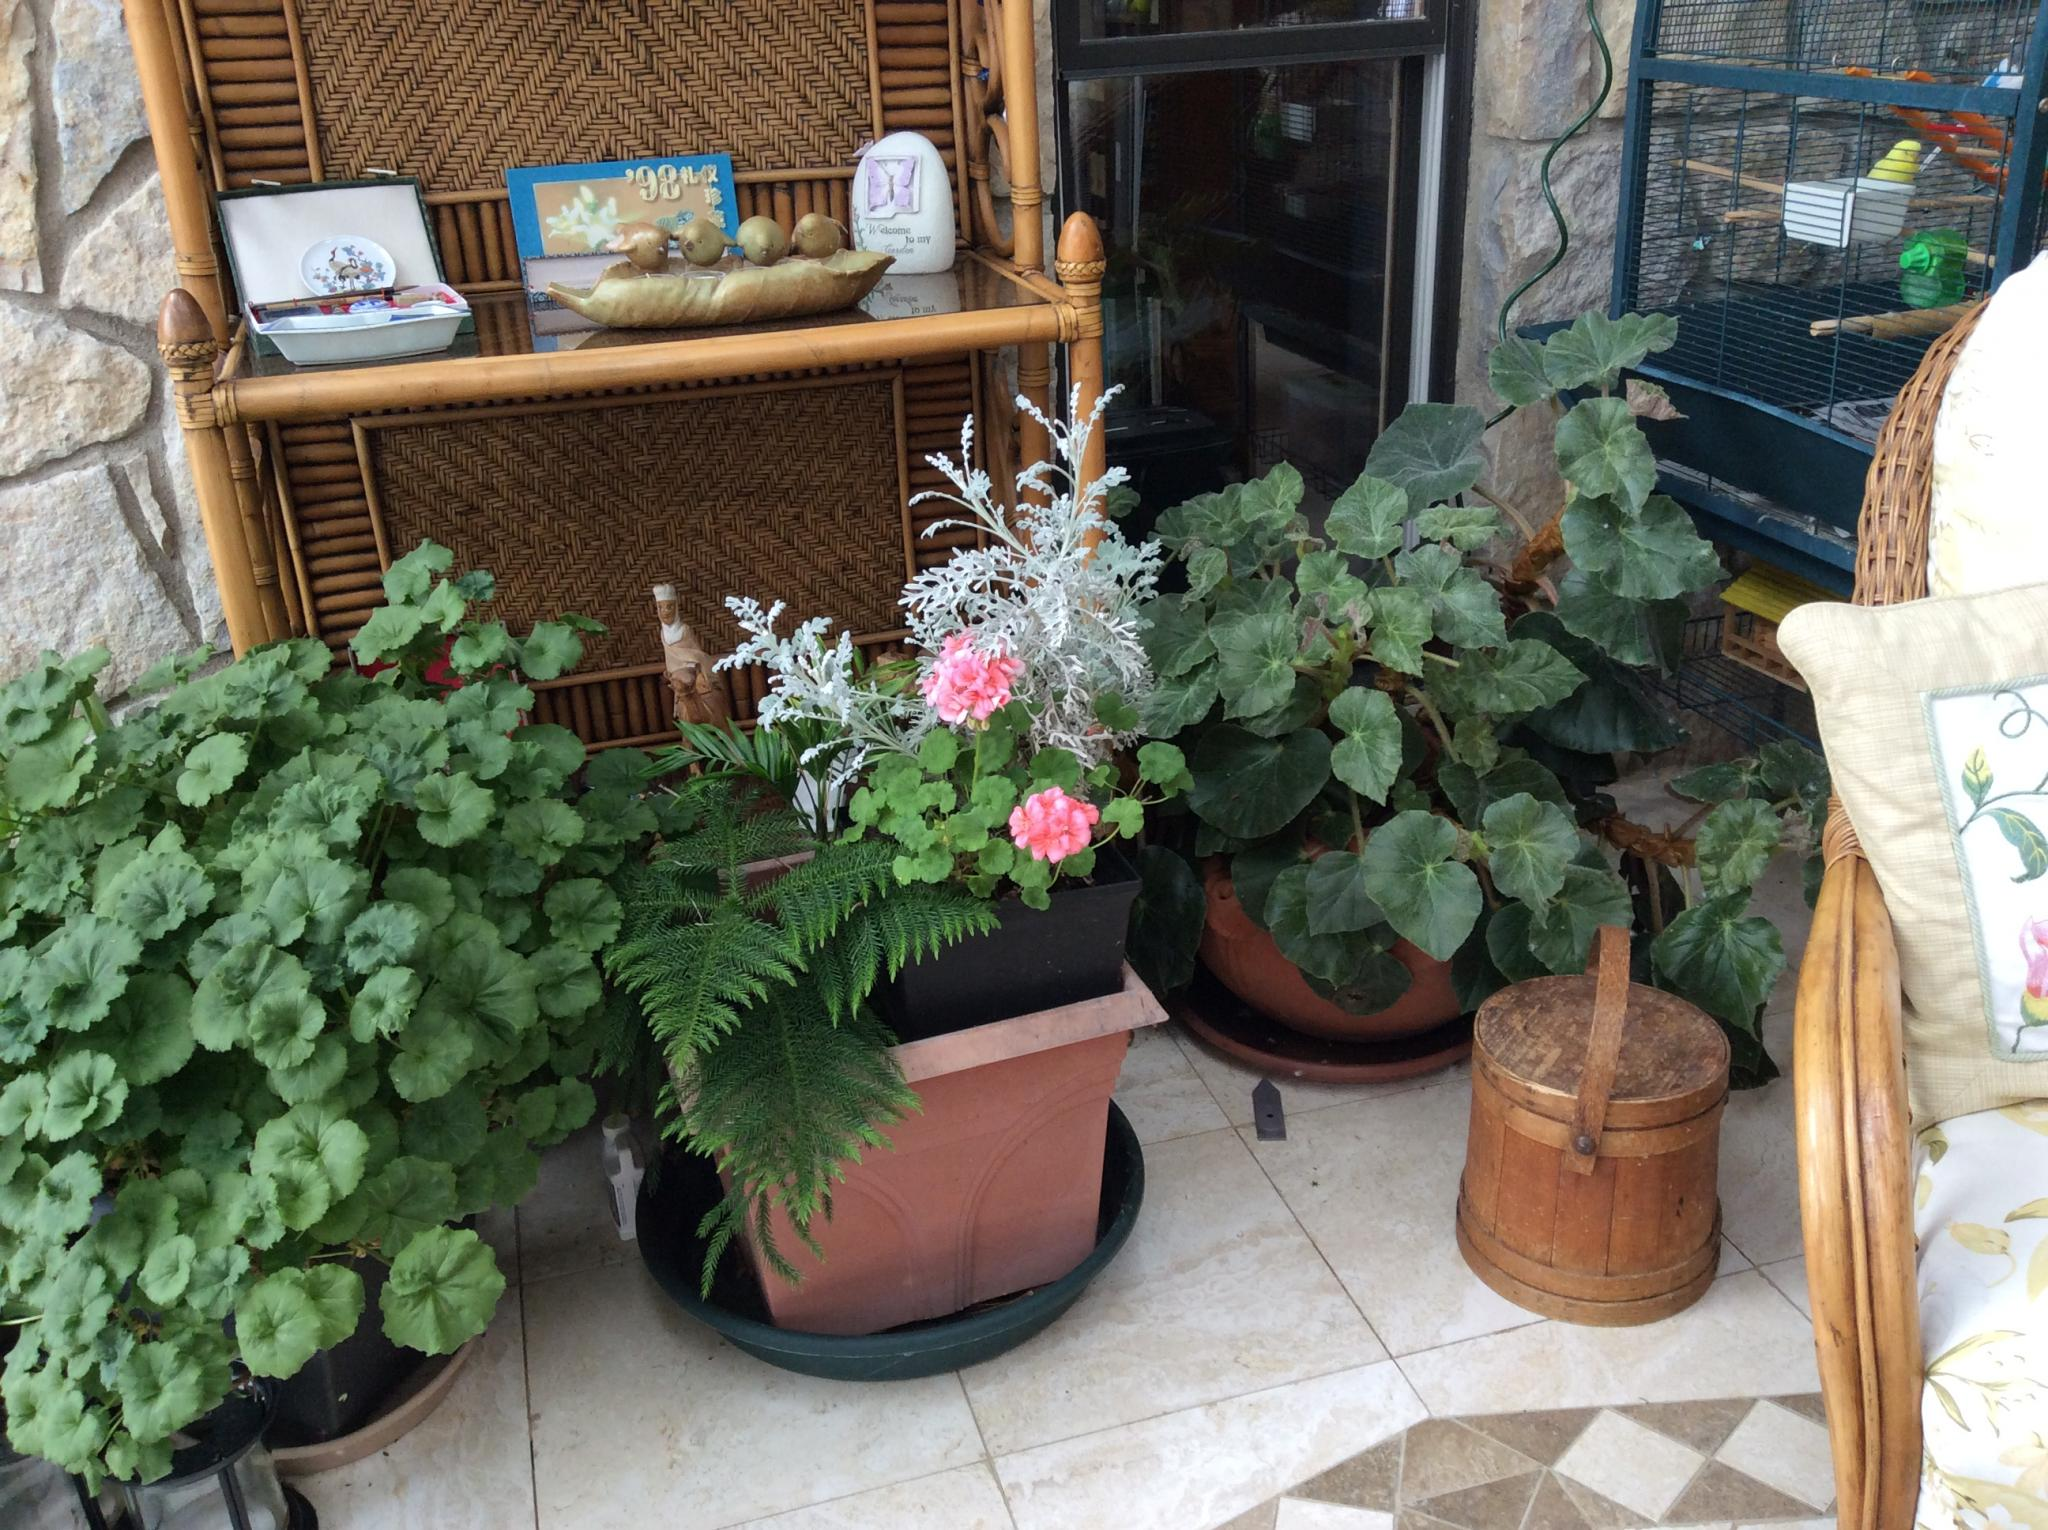 Eddis Garden Indoors And Out In Ohio Finegardening Plants Watering Watcher 2